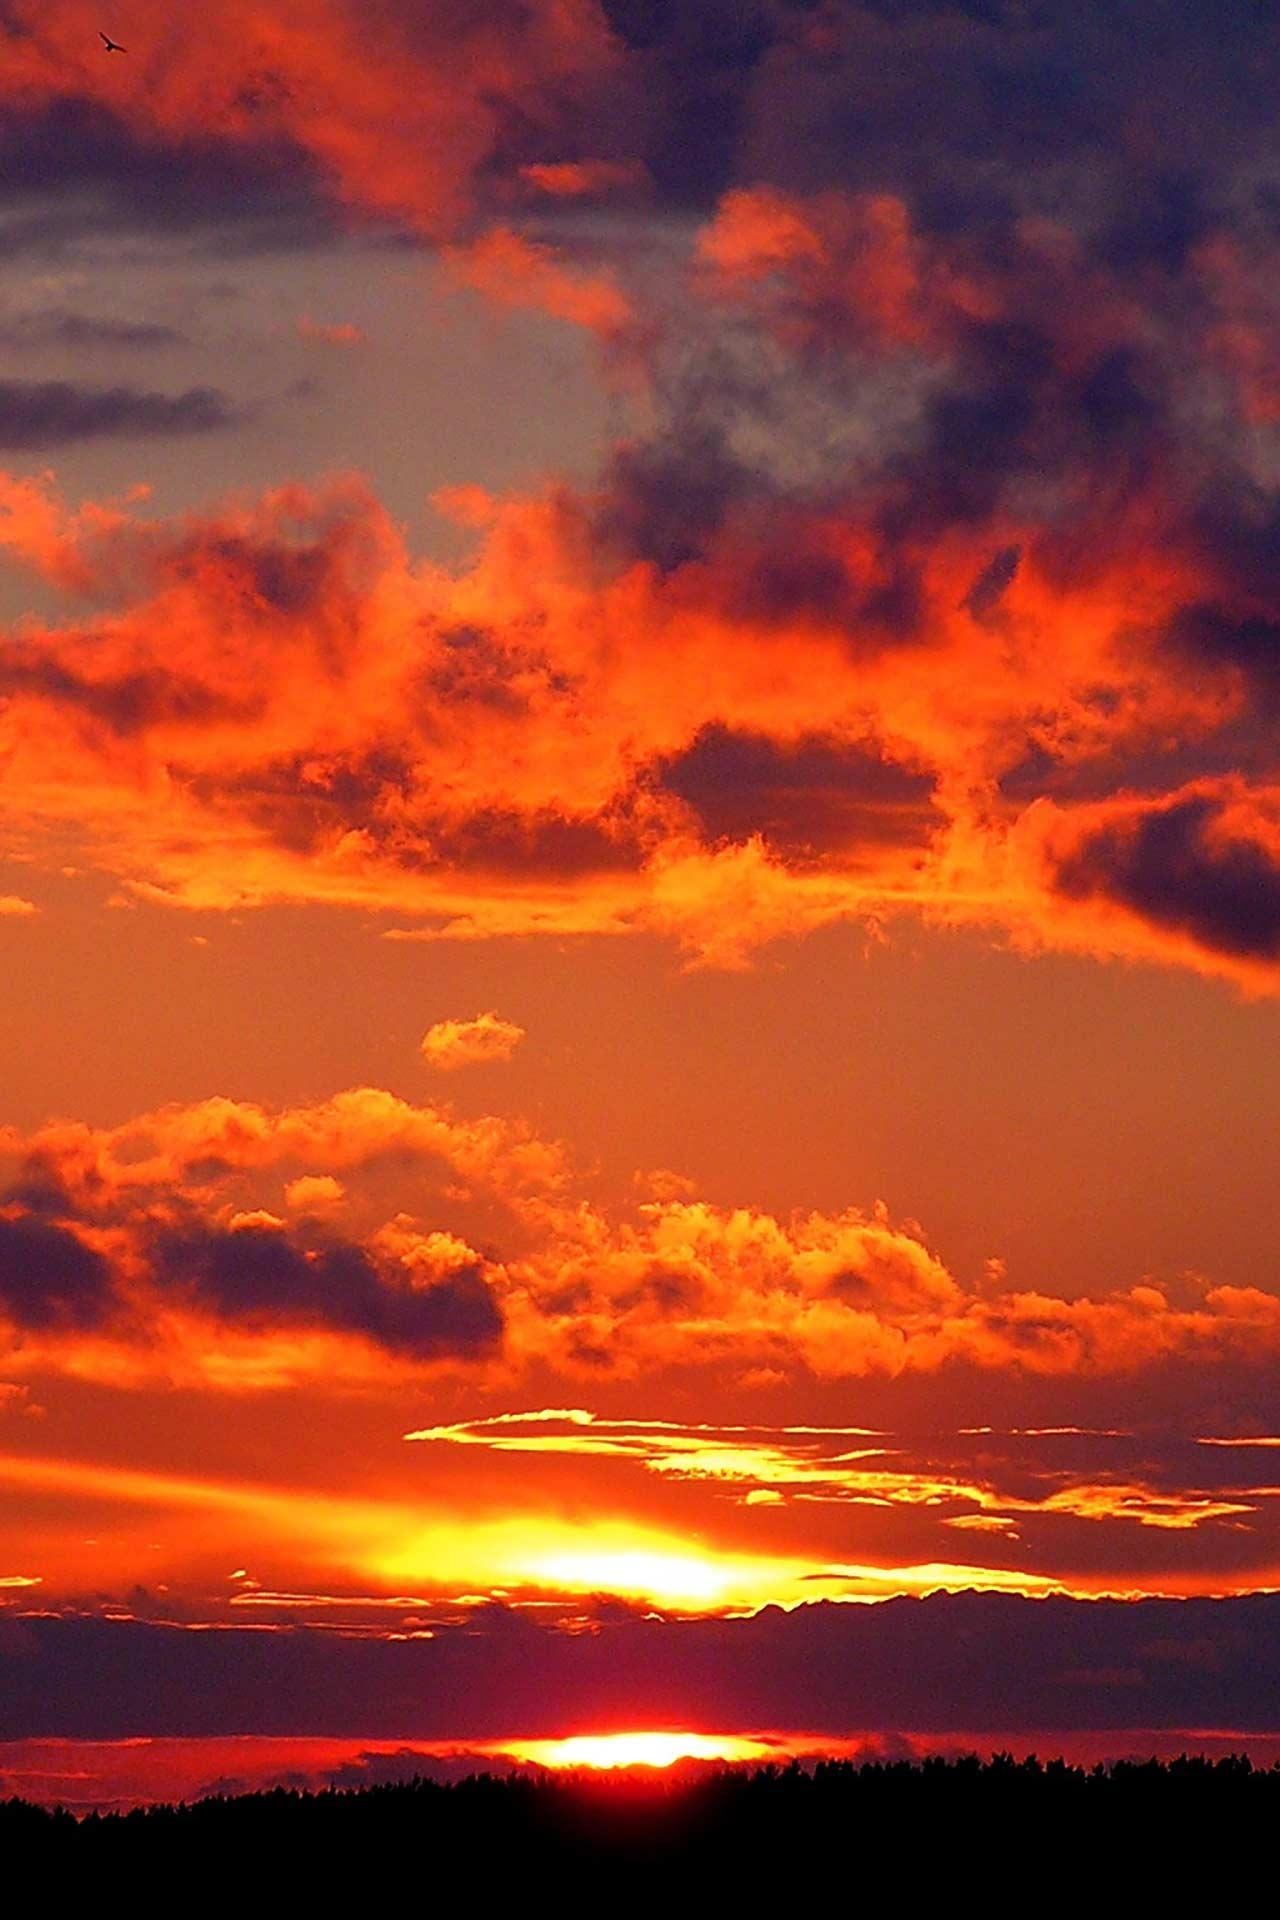 Sunset Live Wallpaper for Android - APK Download